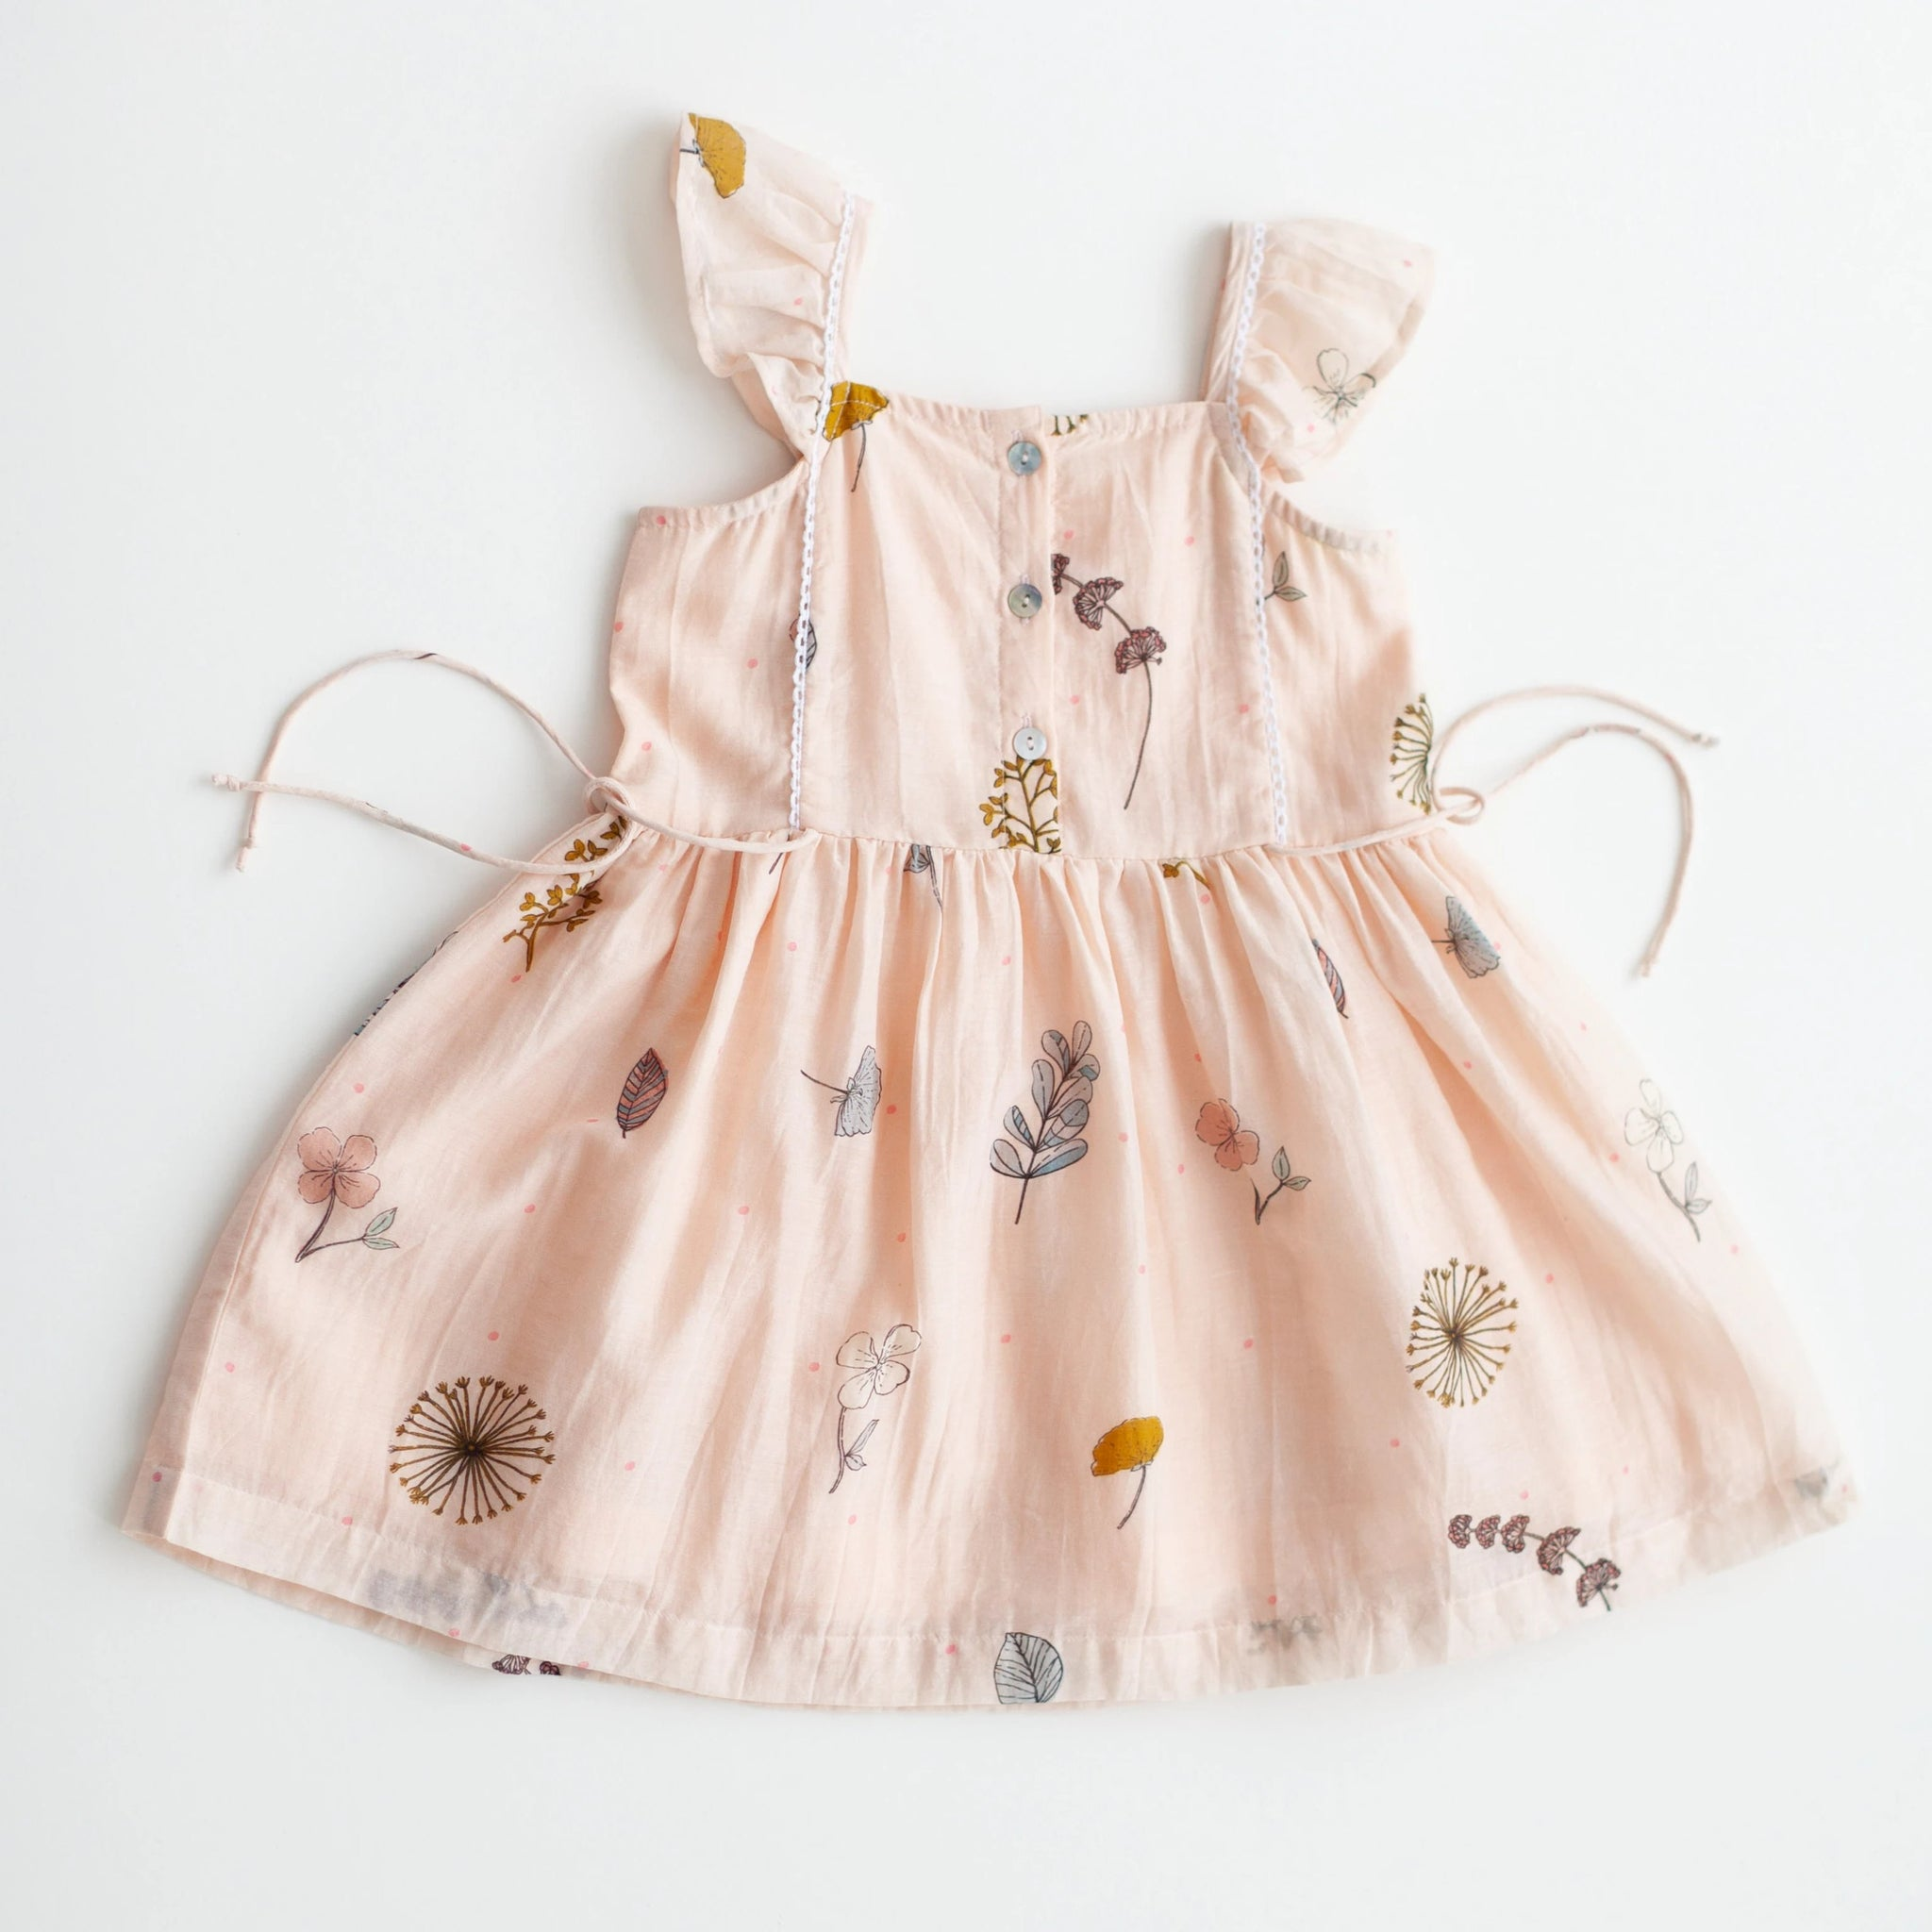 Pinafore Dress - Pressed Flowers